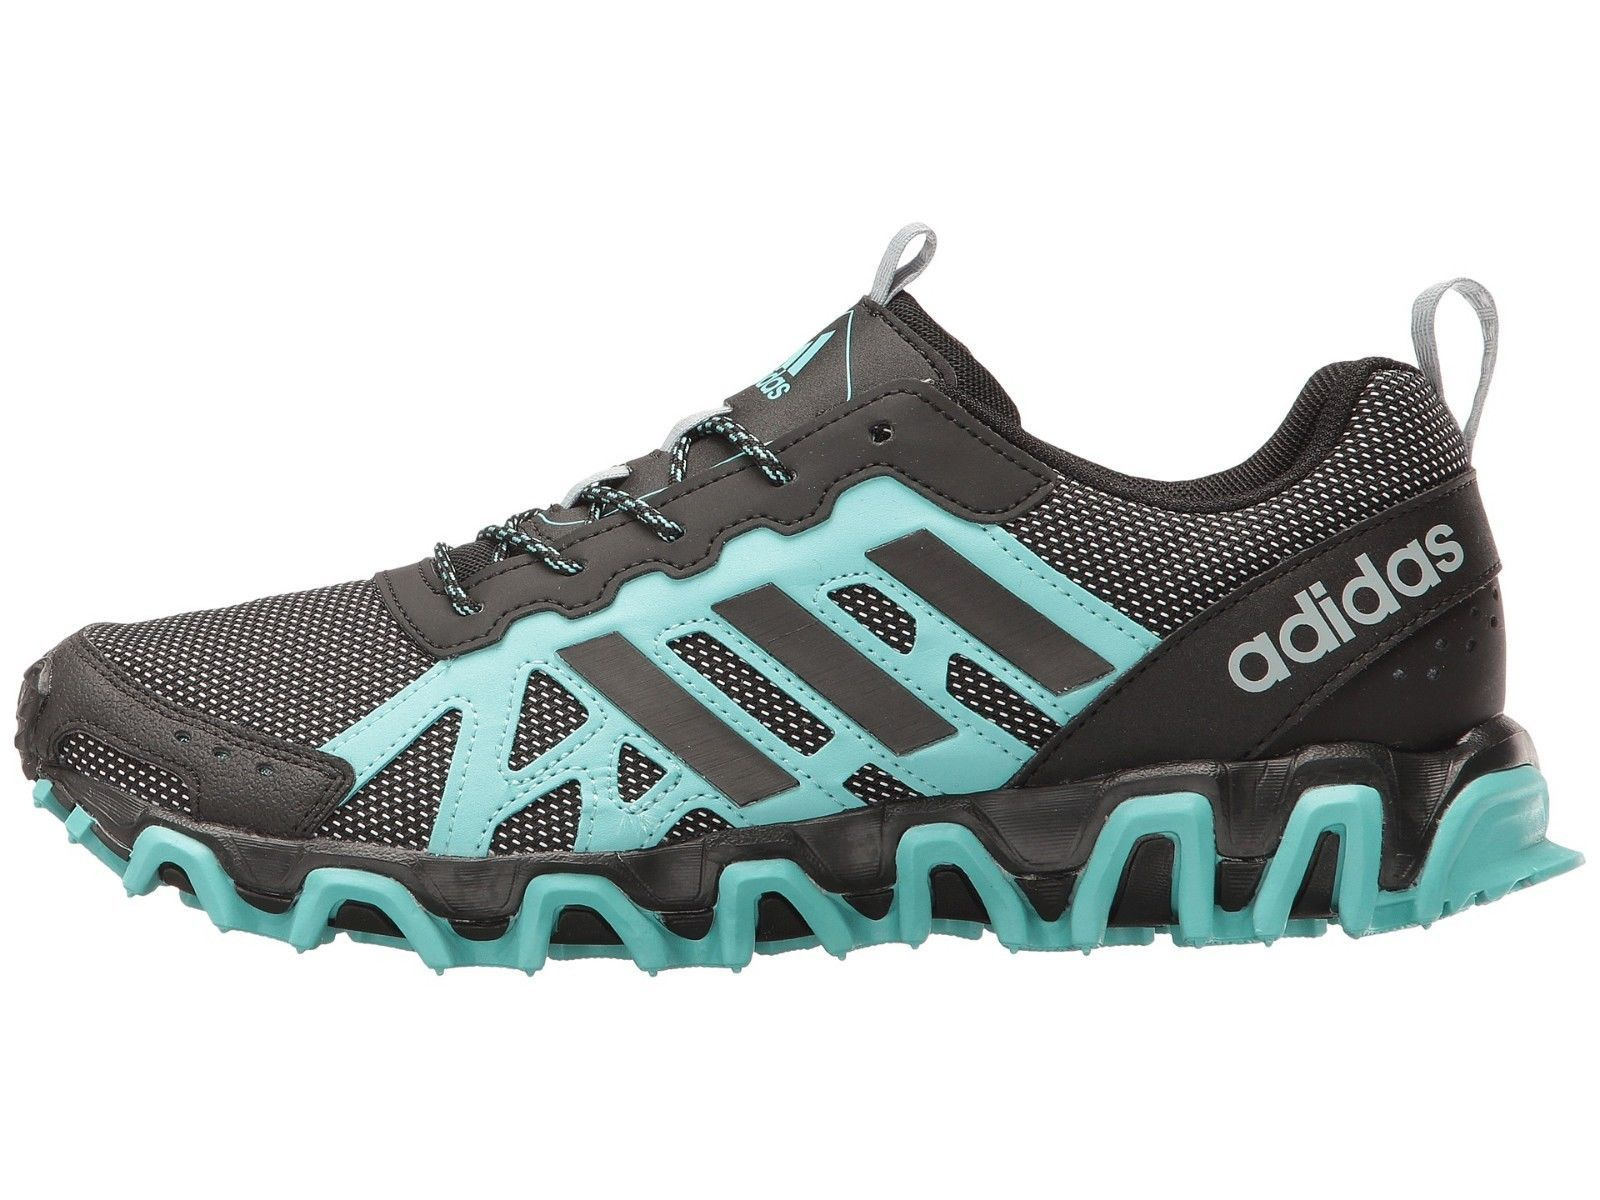 Women's adidas Incision Trail W Running Shoes, S80729 Sizes 6-8 Easy Mint/Black